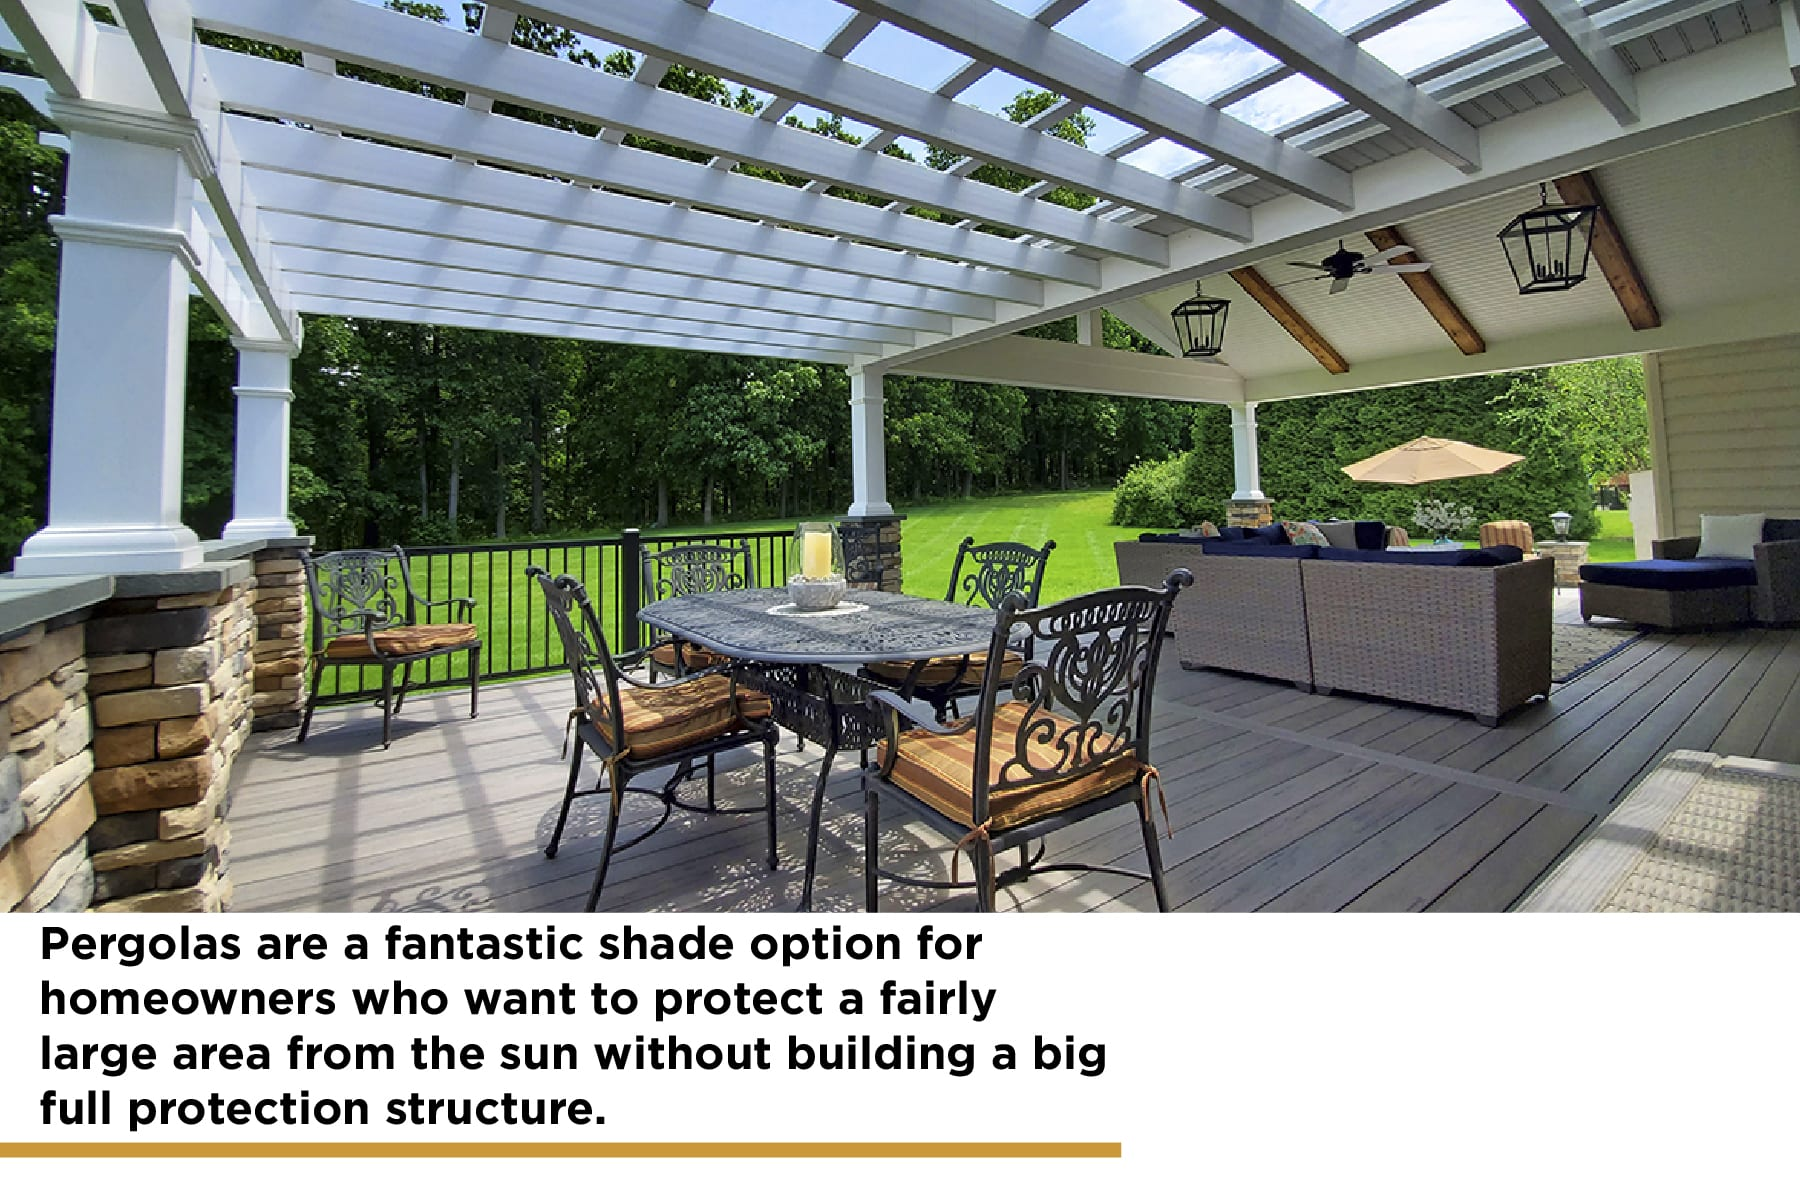 pergolas are an excellent shade structure